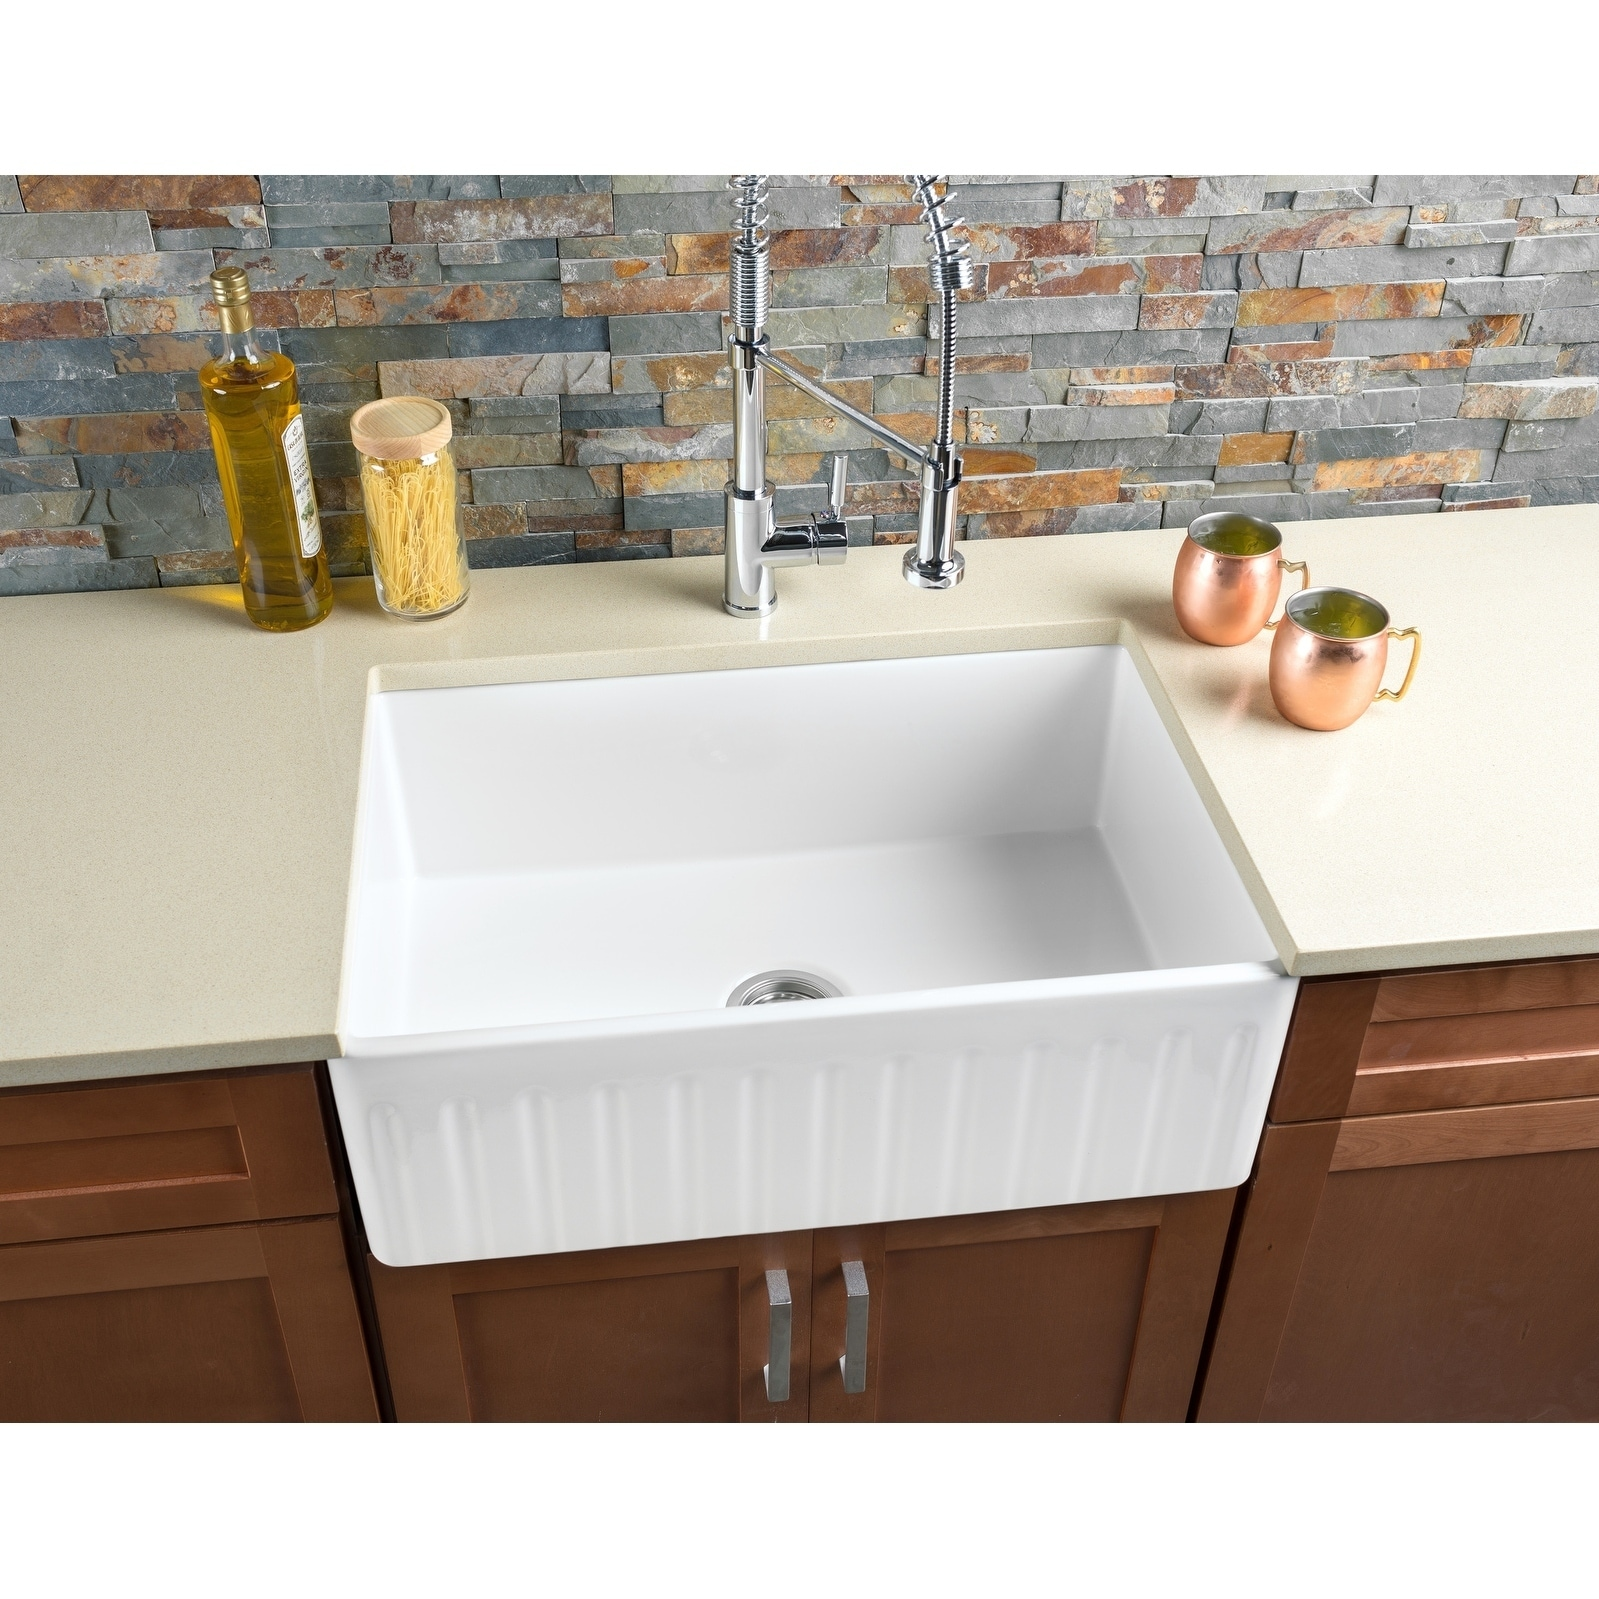 Reversible Single Bowl Farmhouse Sink